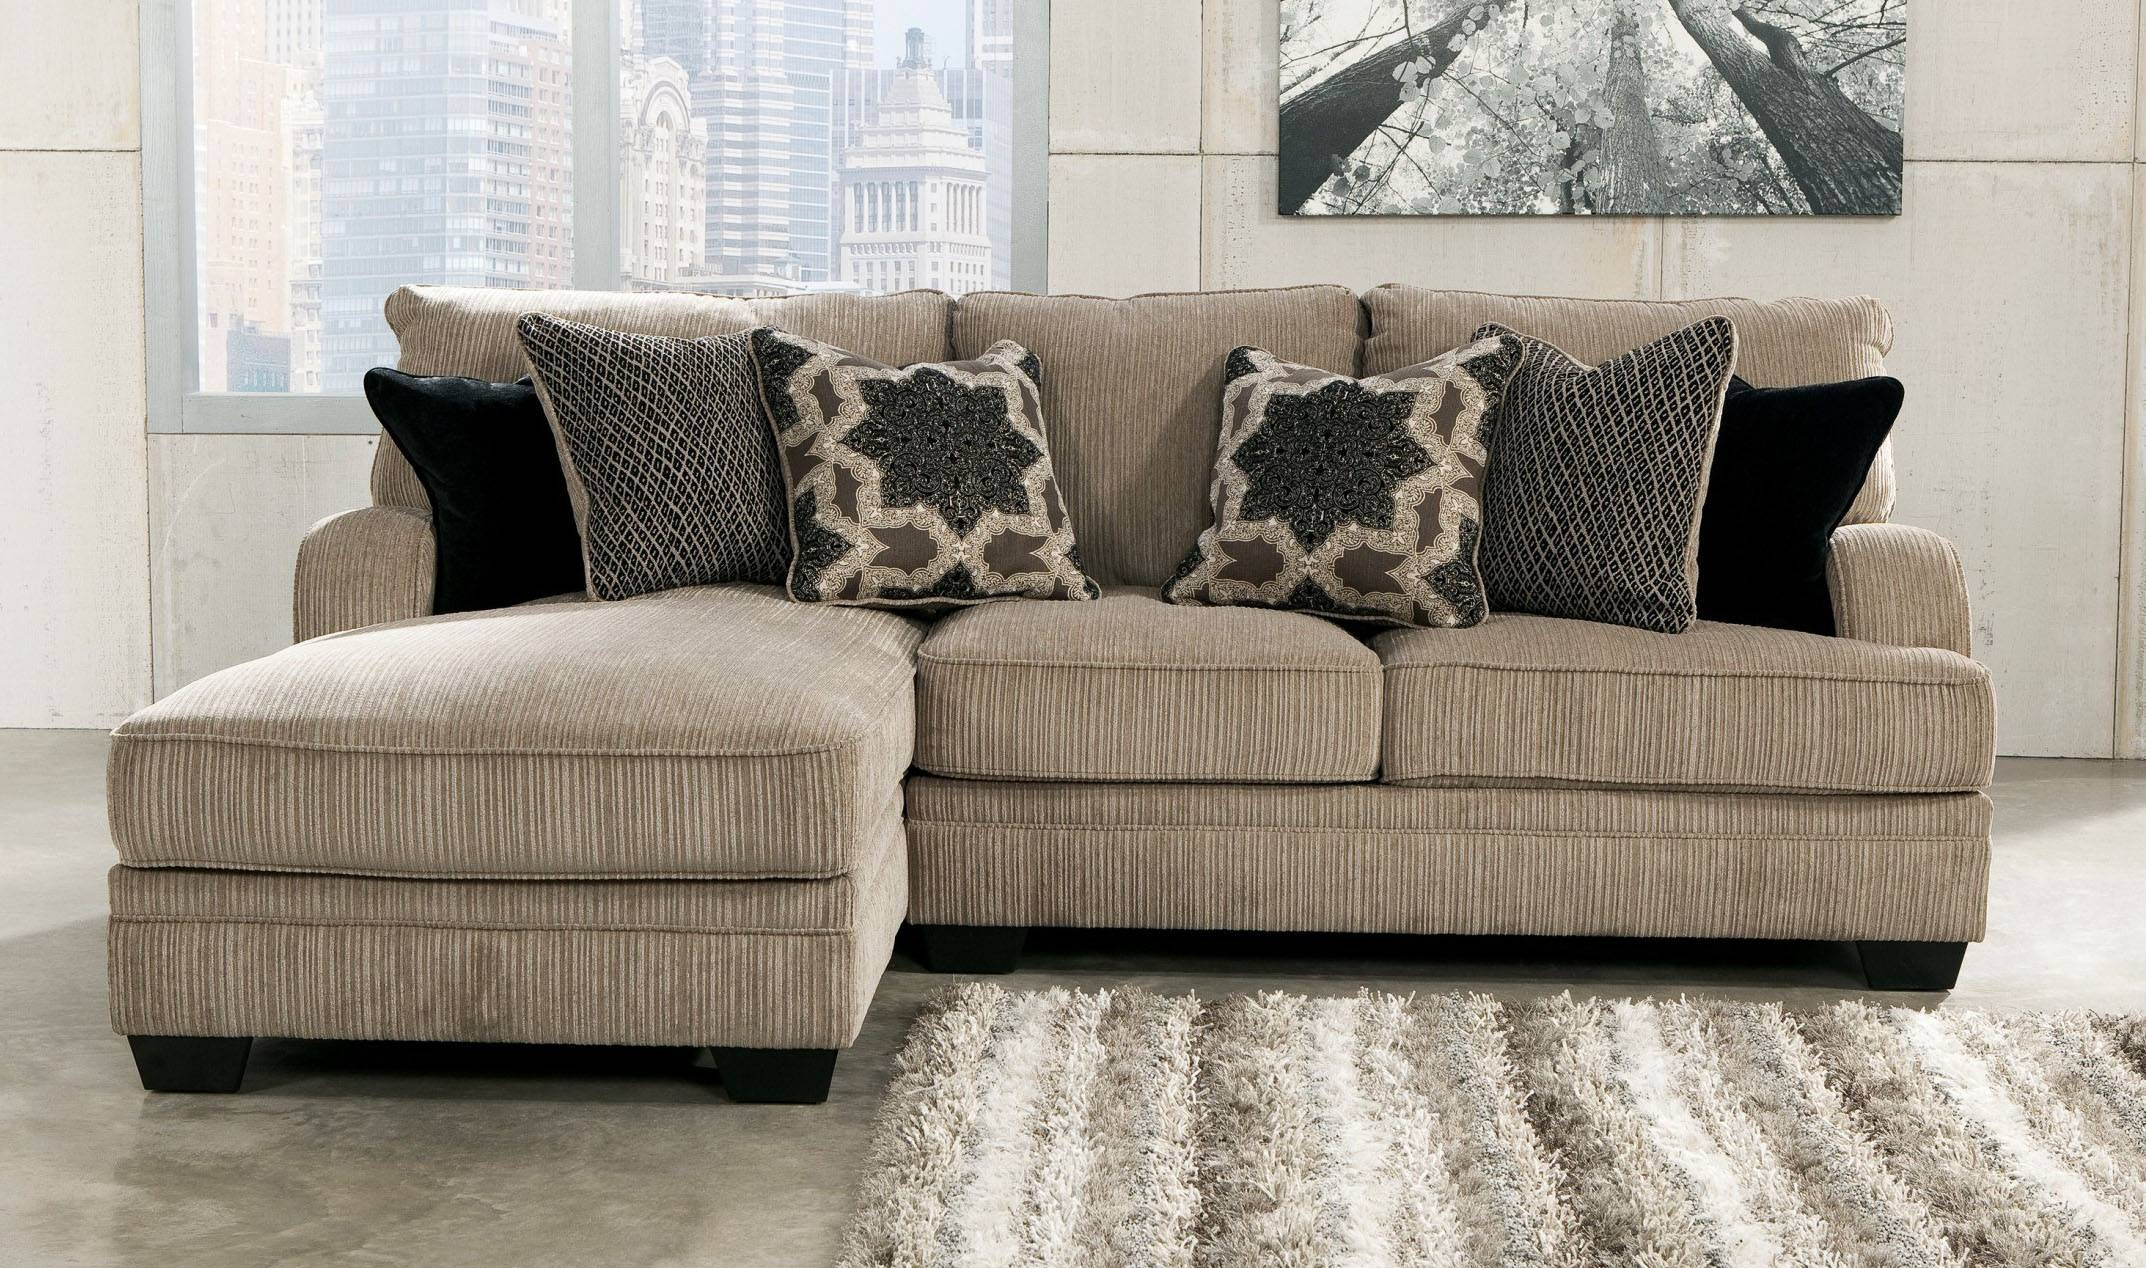 Sofas Winnipeg - Leather Sectional Sofa within Tiny Sofas (Image 21 of 30)